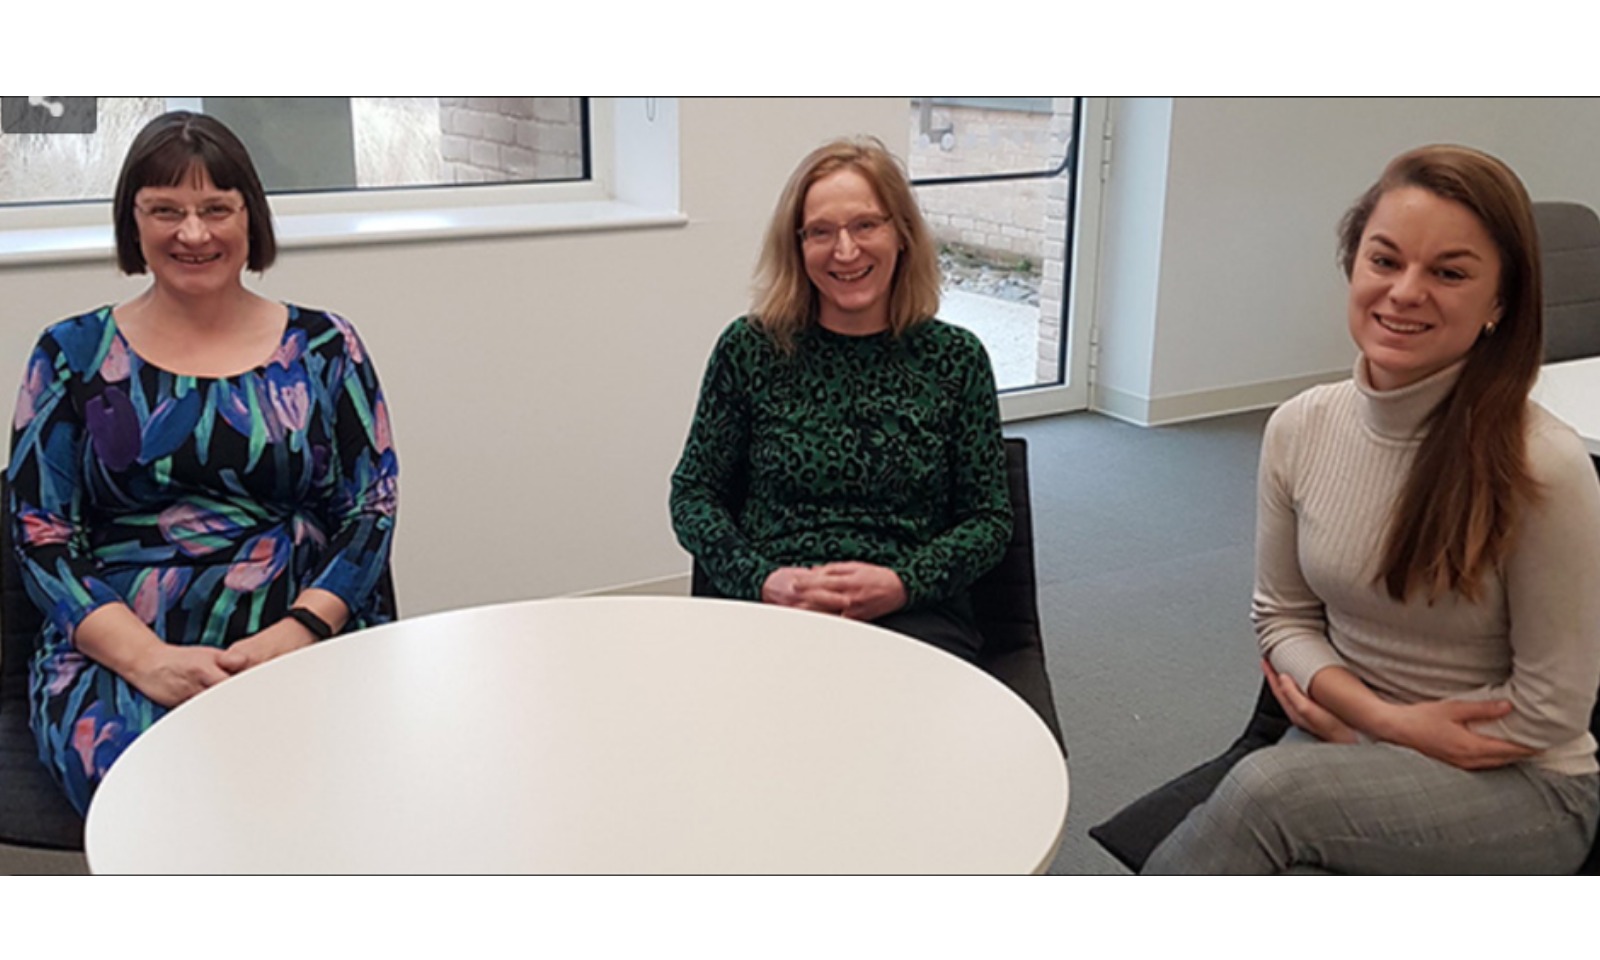 Joining the discussion are three fantastic women from across the Cambridge Assessment Group: Jill Duffy, OCR's first female Chief Executive, Anne Clarke, Product Owner Agile, Cambridge Assessment English, and Antonia Sudkämper, Researcher,